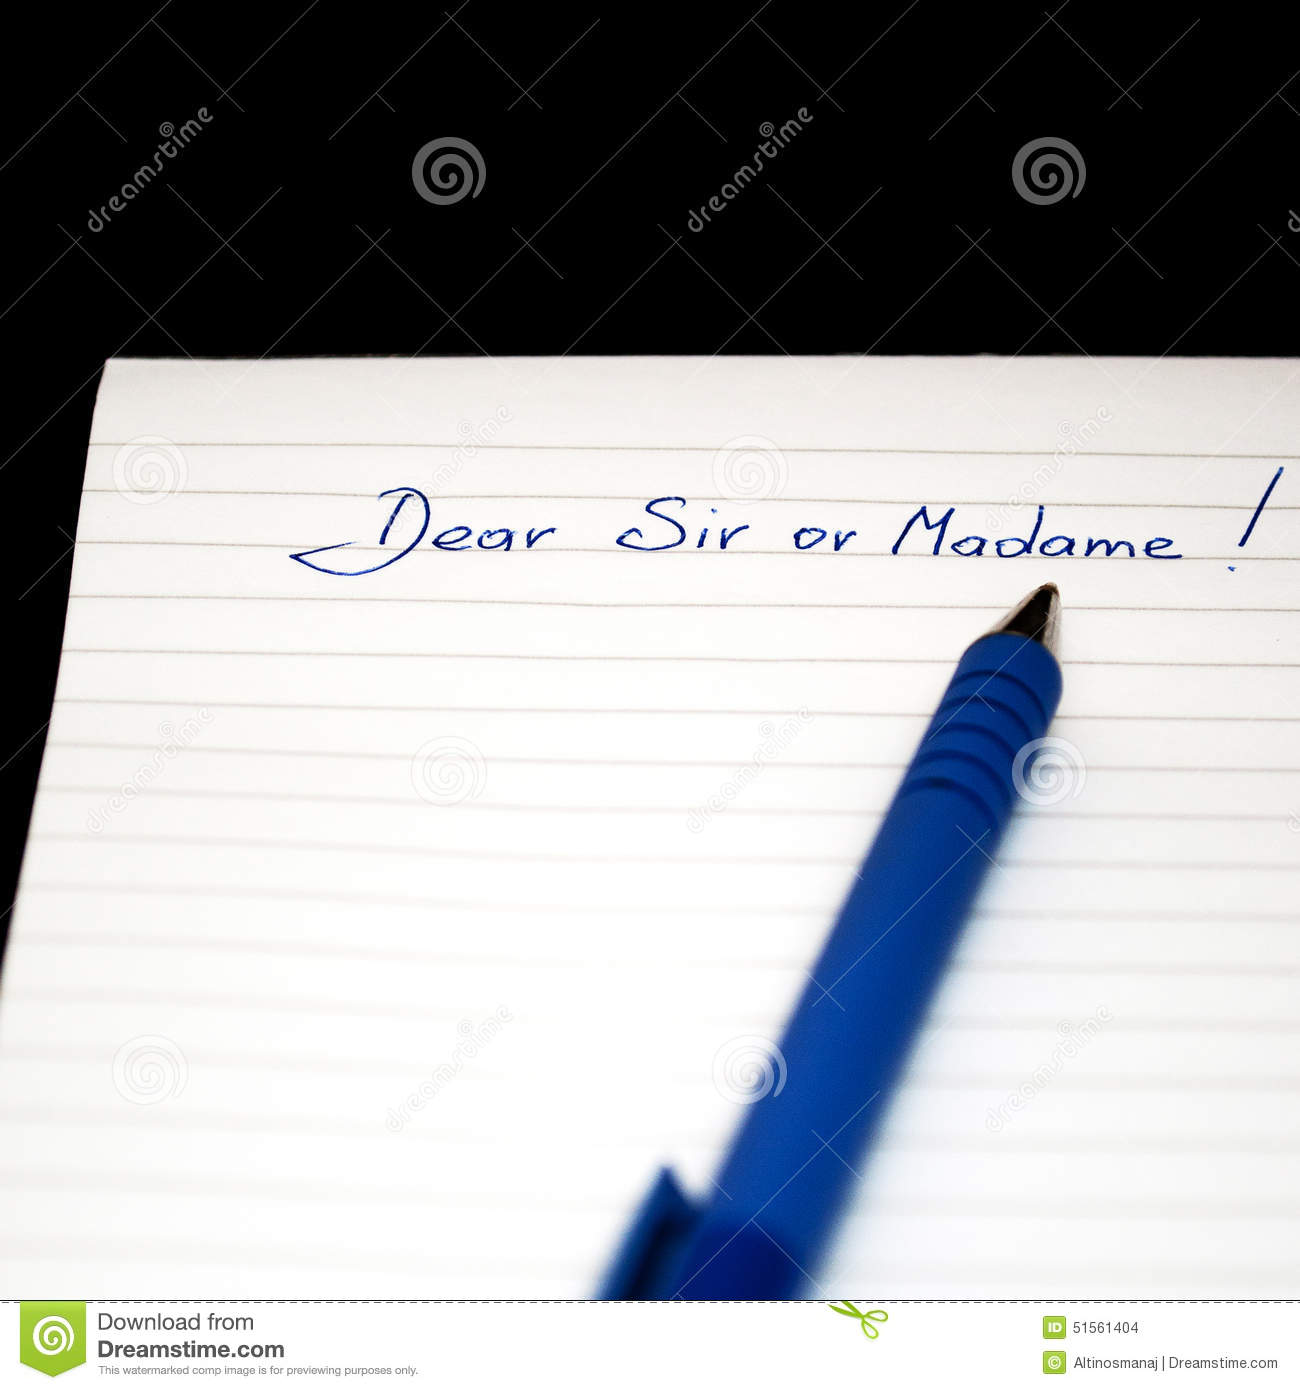 Dear Sir Or Madame Hand Written Note Letter Writing Stock Photo